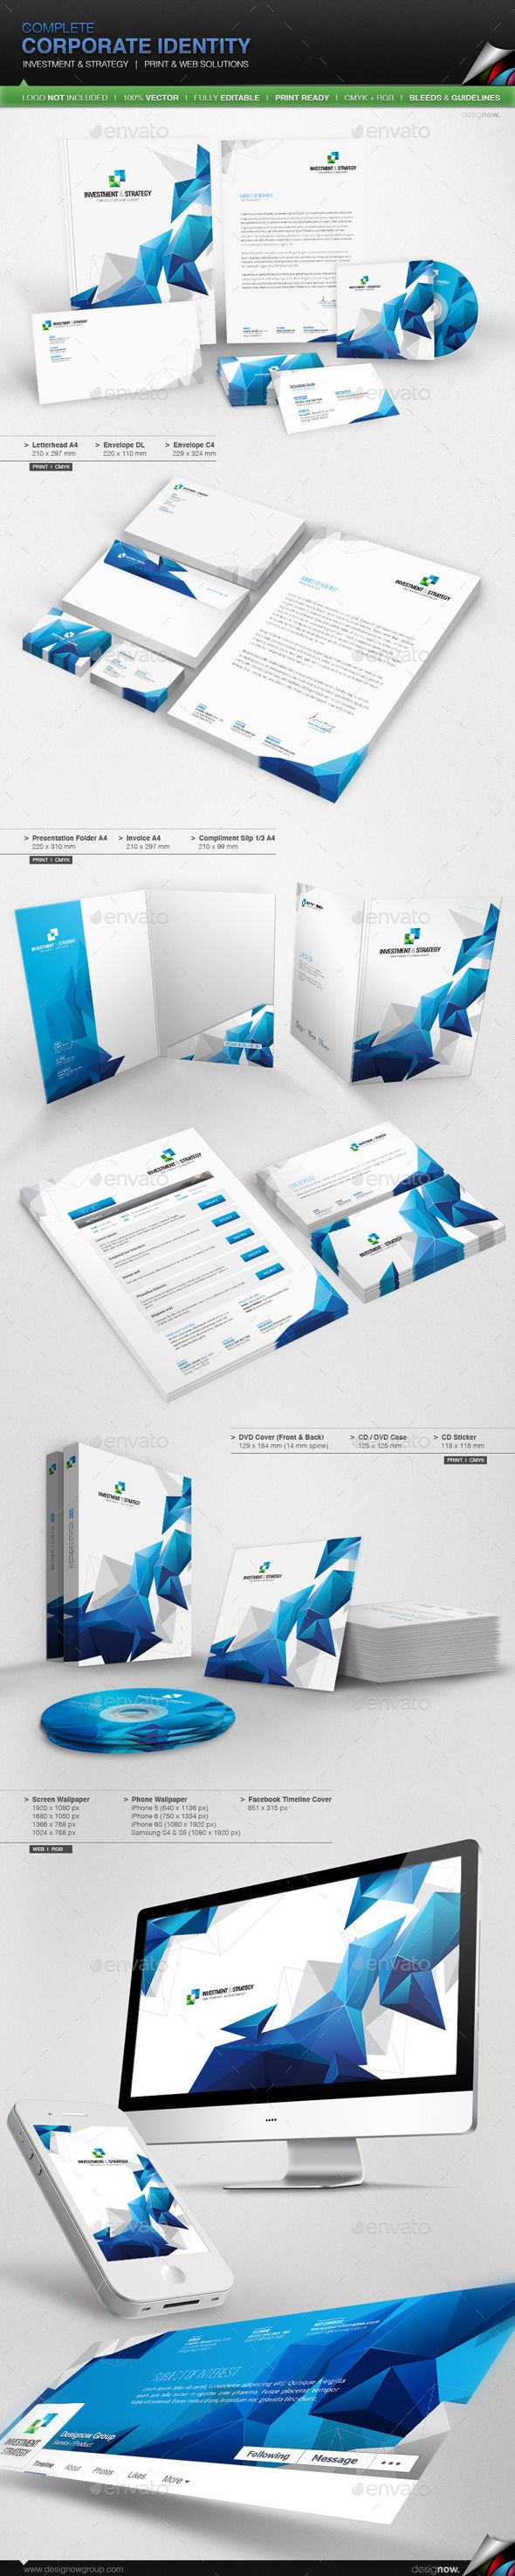 Corporate Identity  Investment And Strategy  Corporate Identity